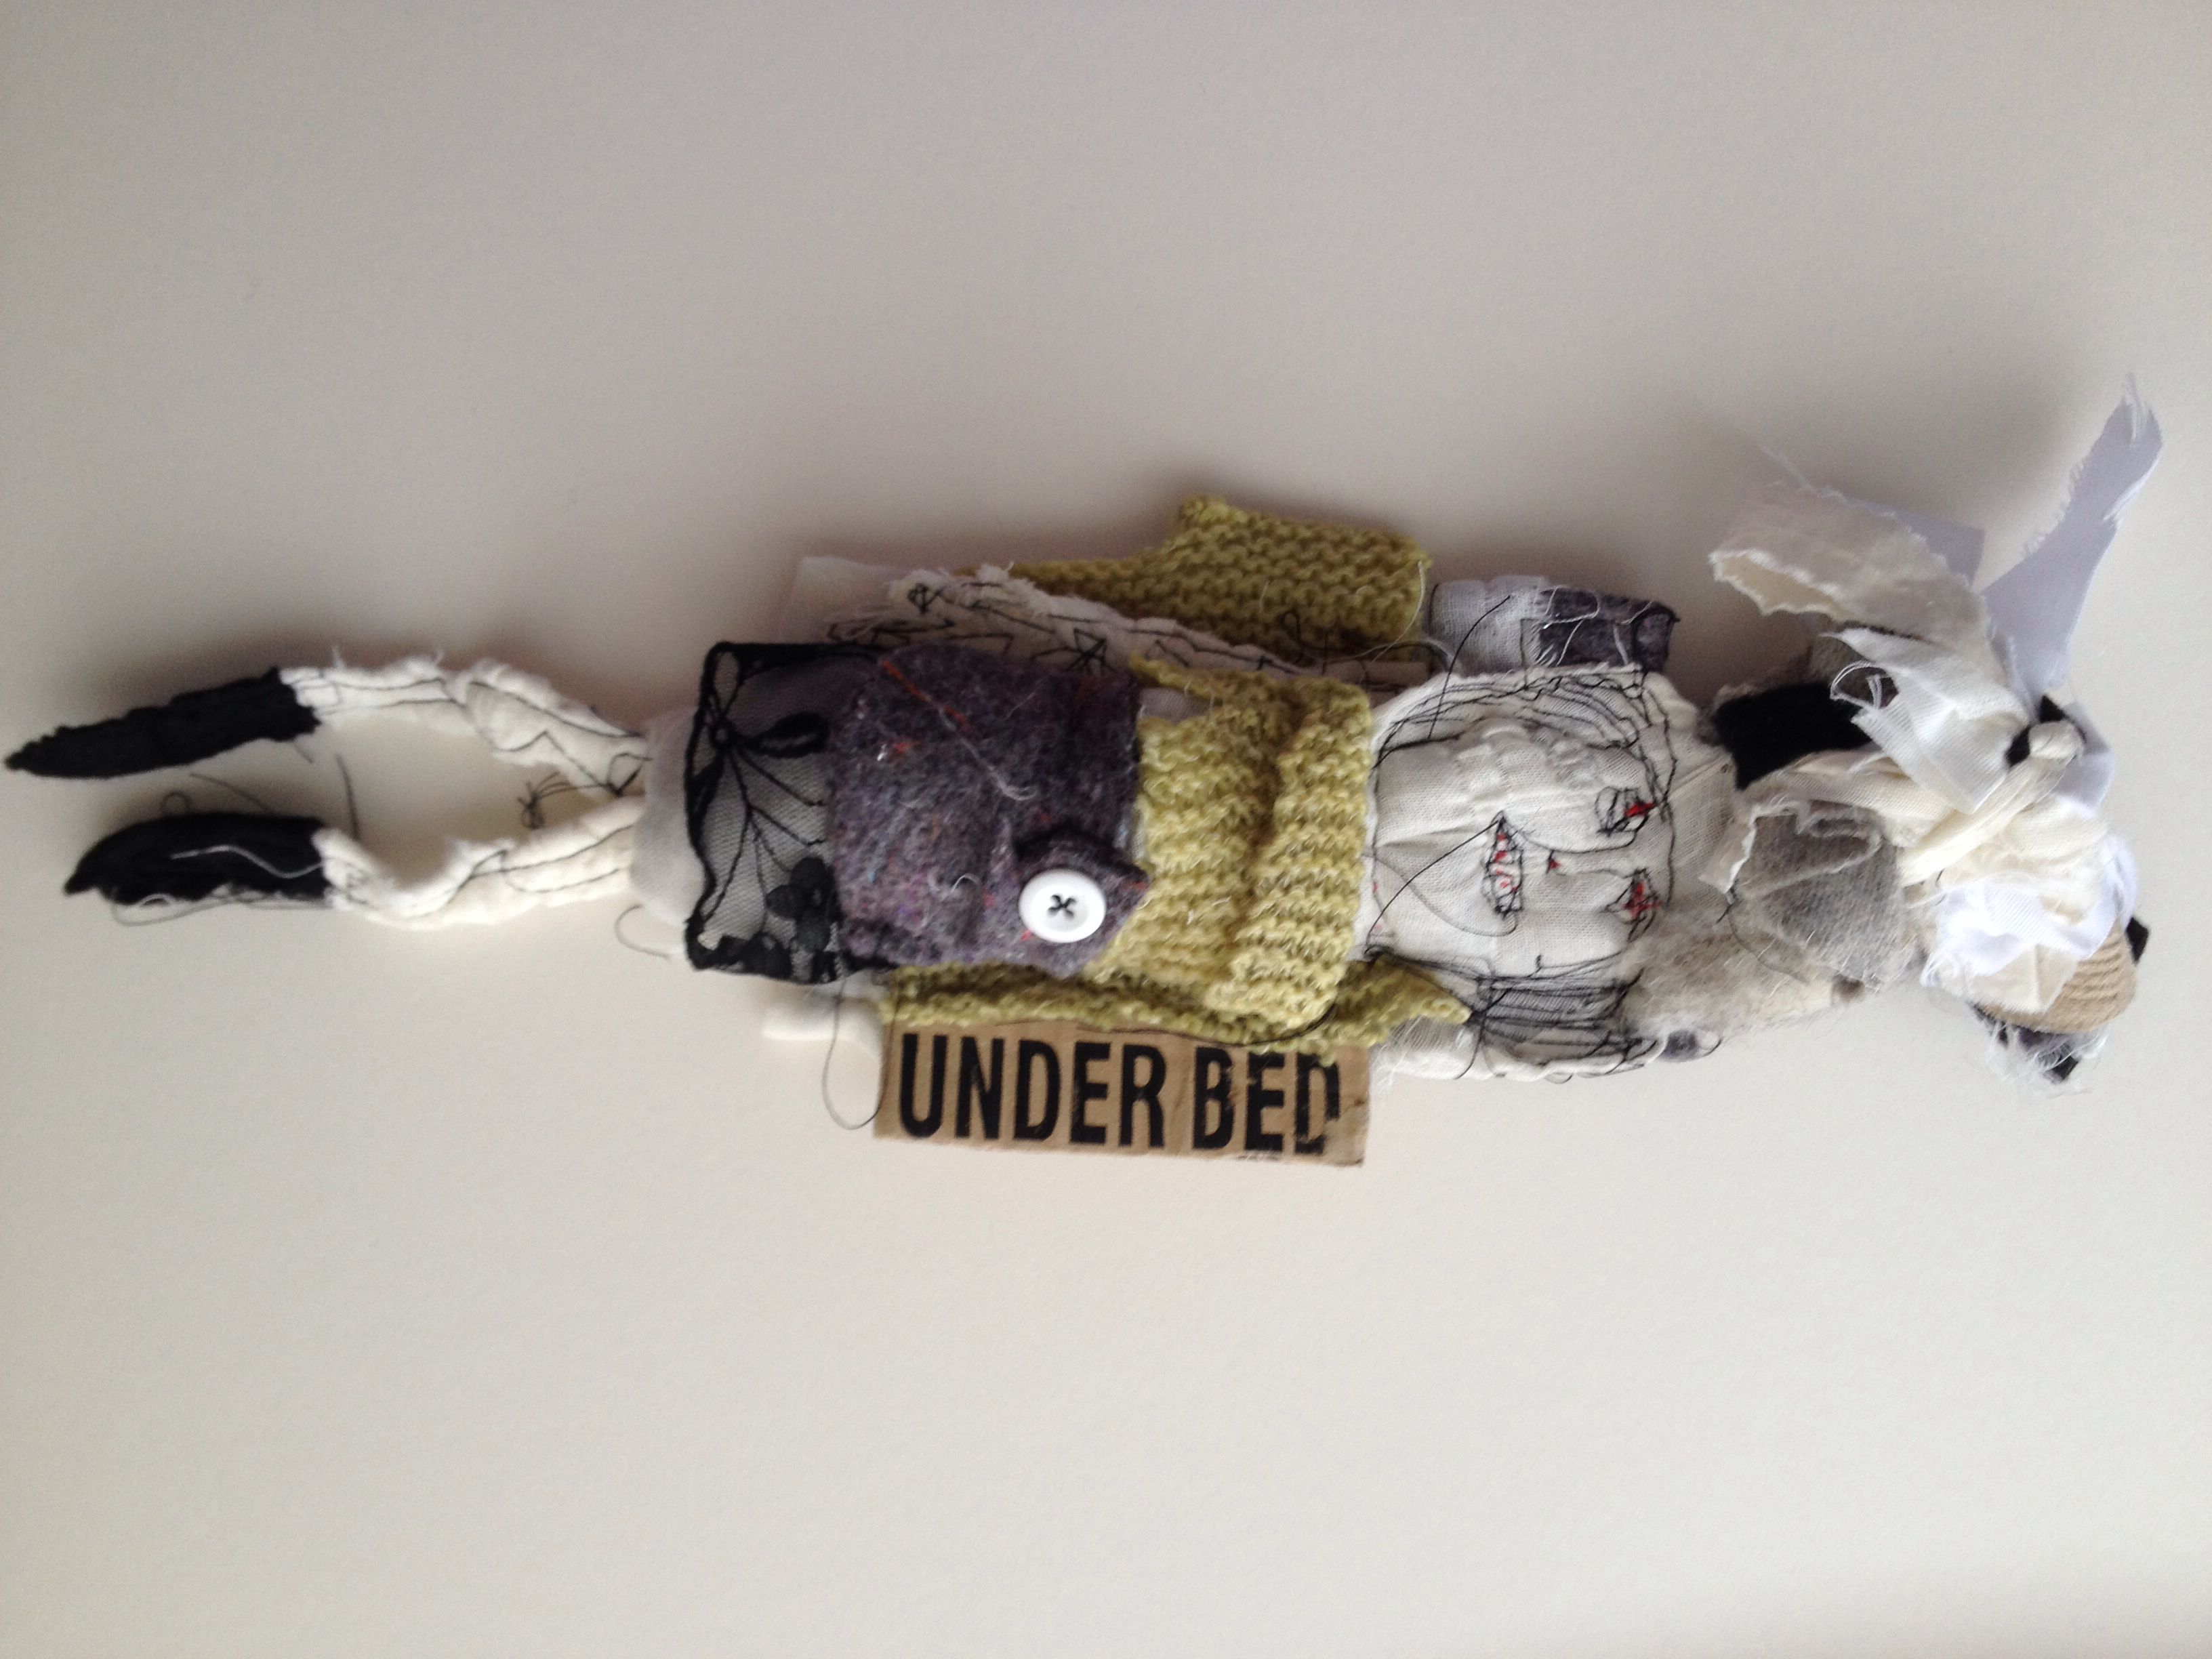 Art doll 'Under the Bed'